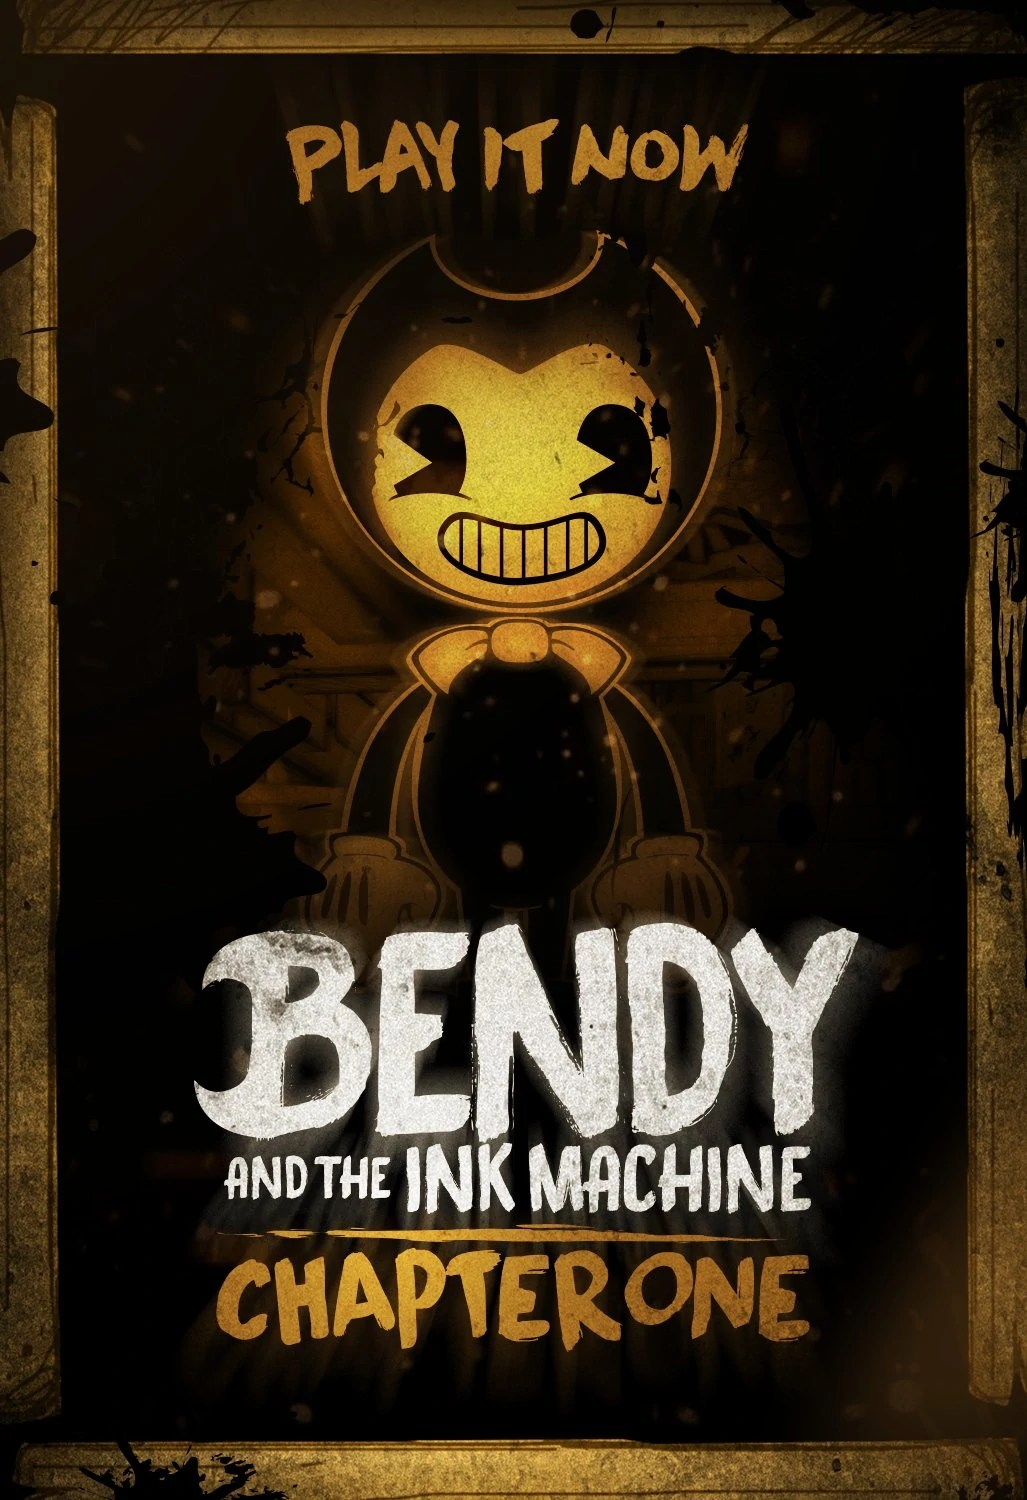 Bendy Chapter and the Machine Ink